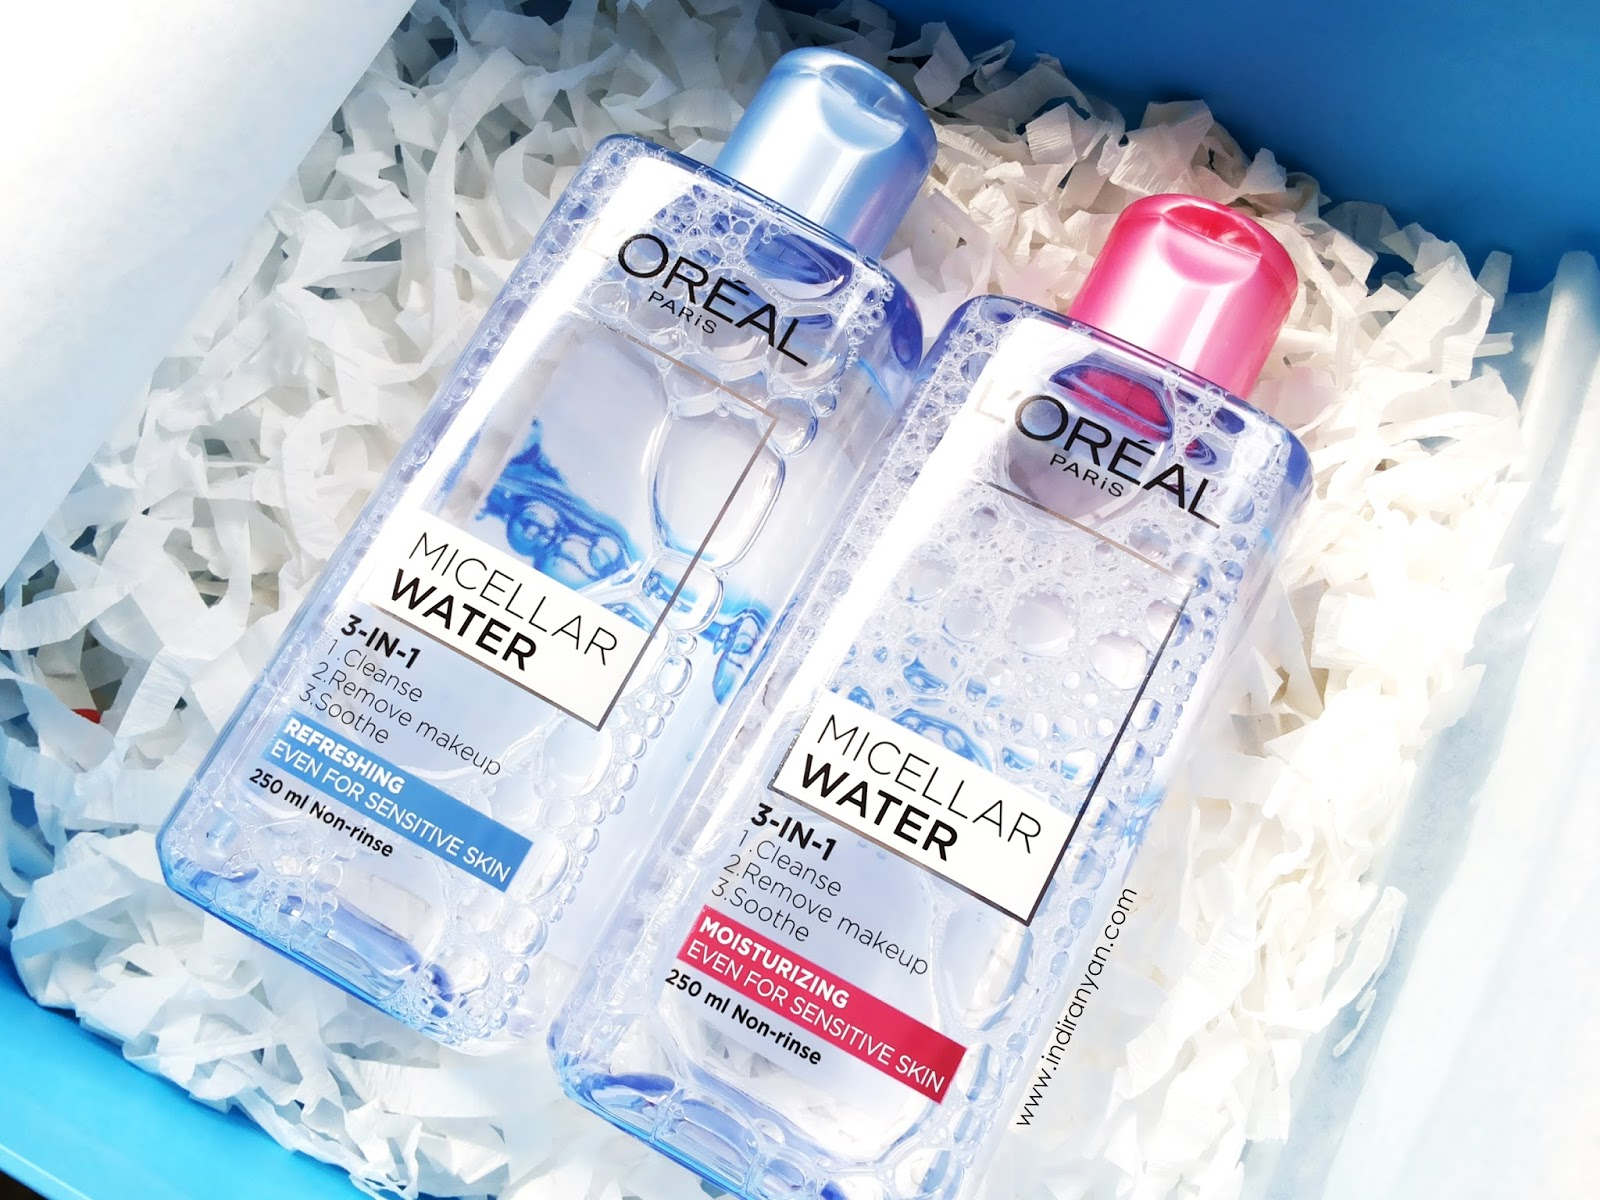 loreal-micellar-water-review, loreal-micellar-water-packaging, loreal-micellar-water-harga